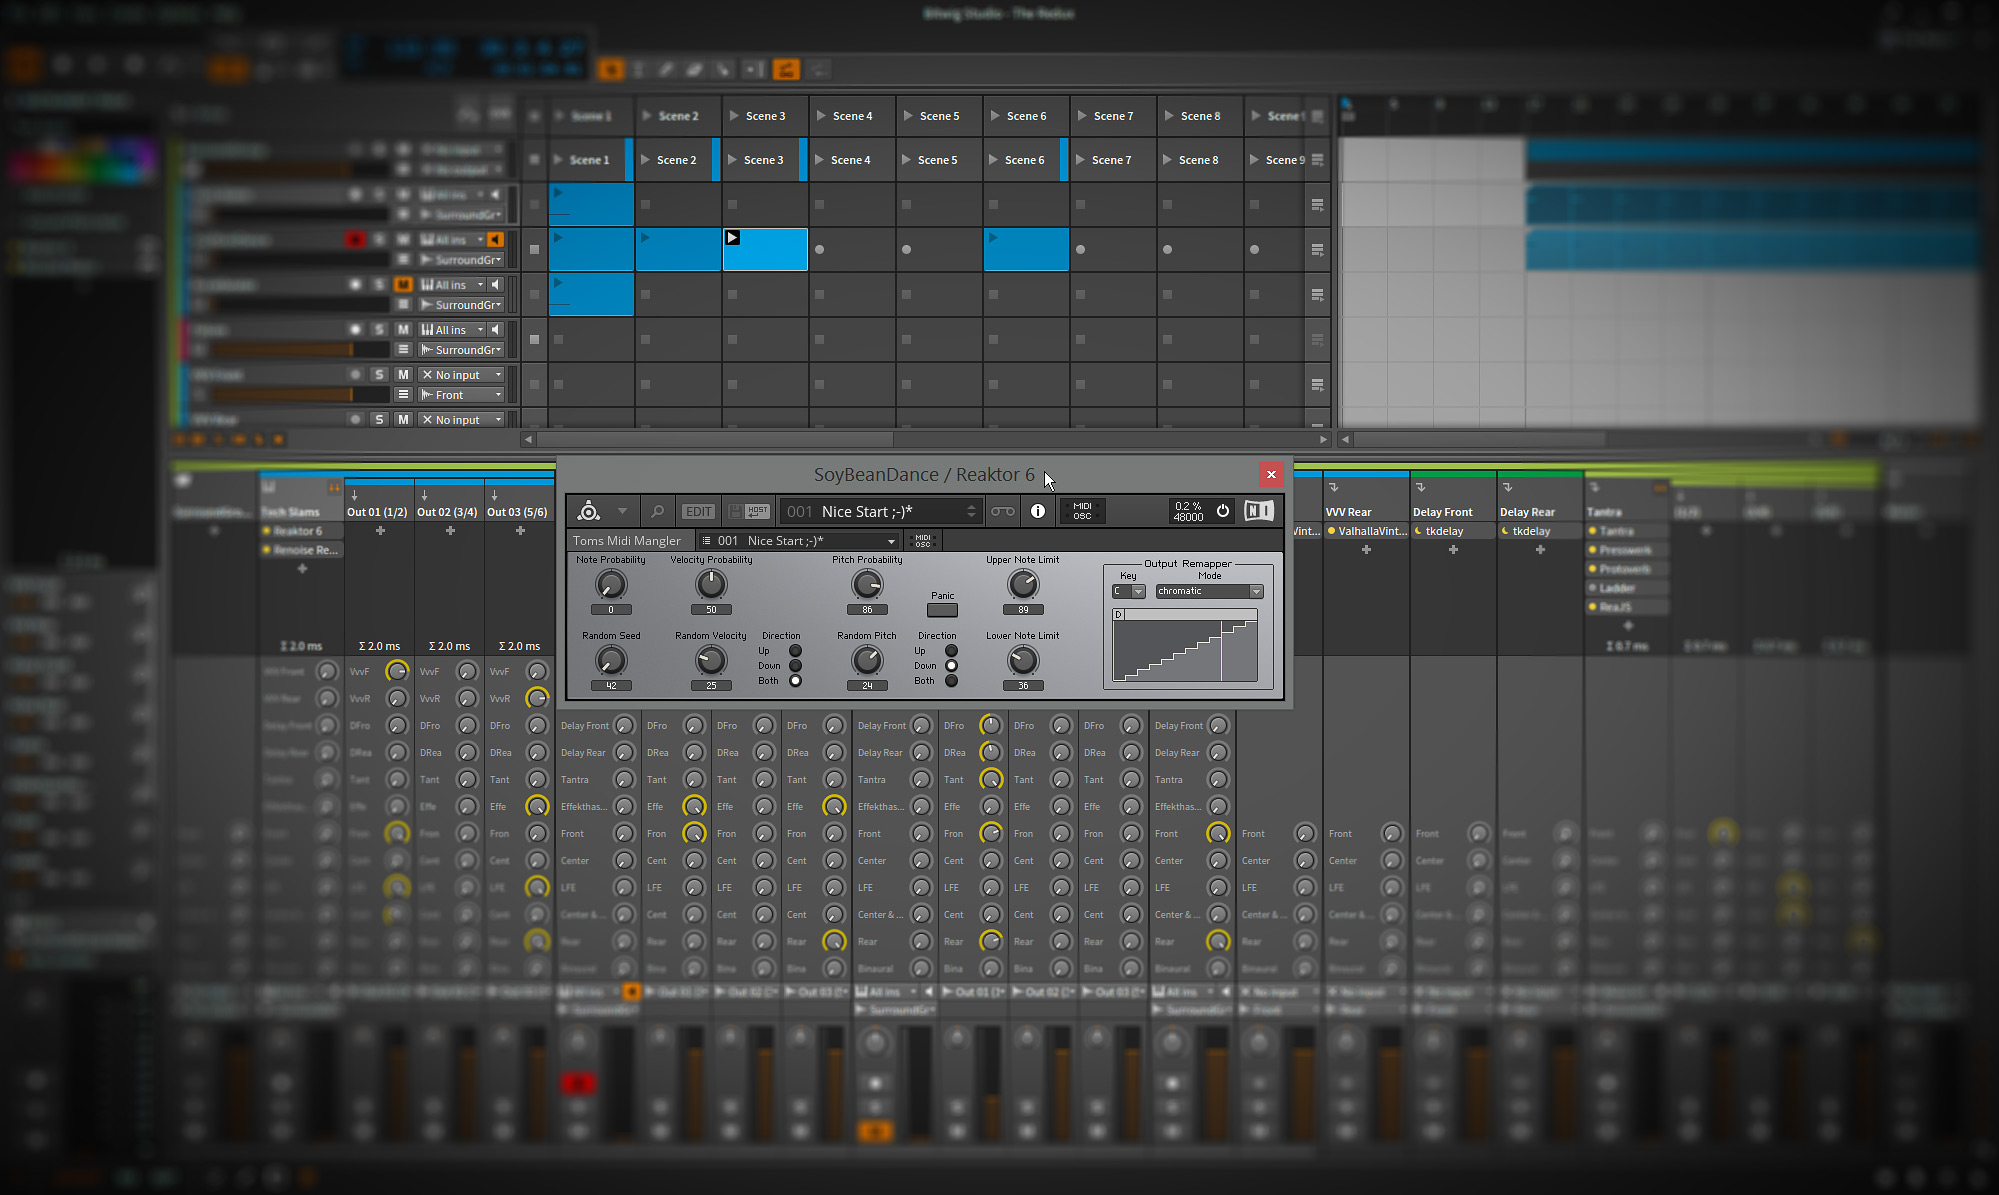 My tool for live-wrangling of Midi data for NI Reaktor 6